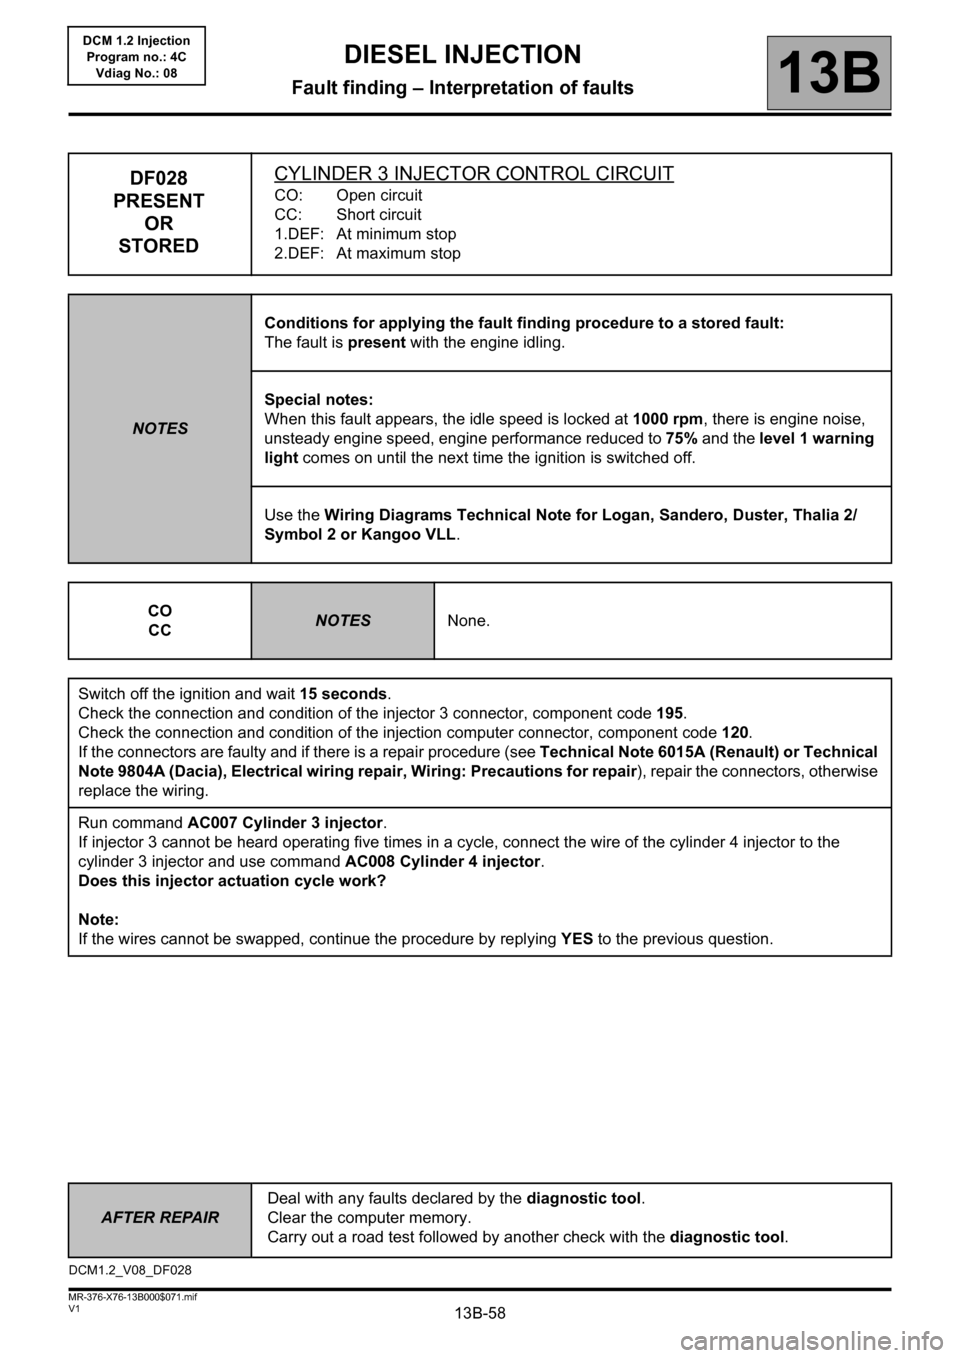 RENAULT KANGOO 2013 X61 / 2.G Diesel DCM 1.2 Injection Workshop Manual, Page 58